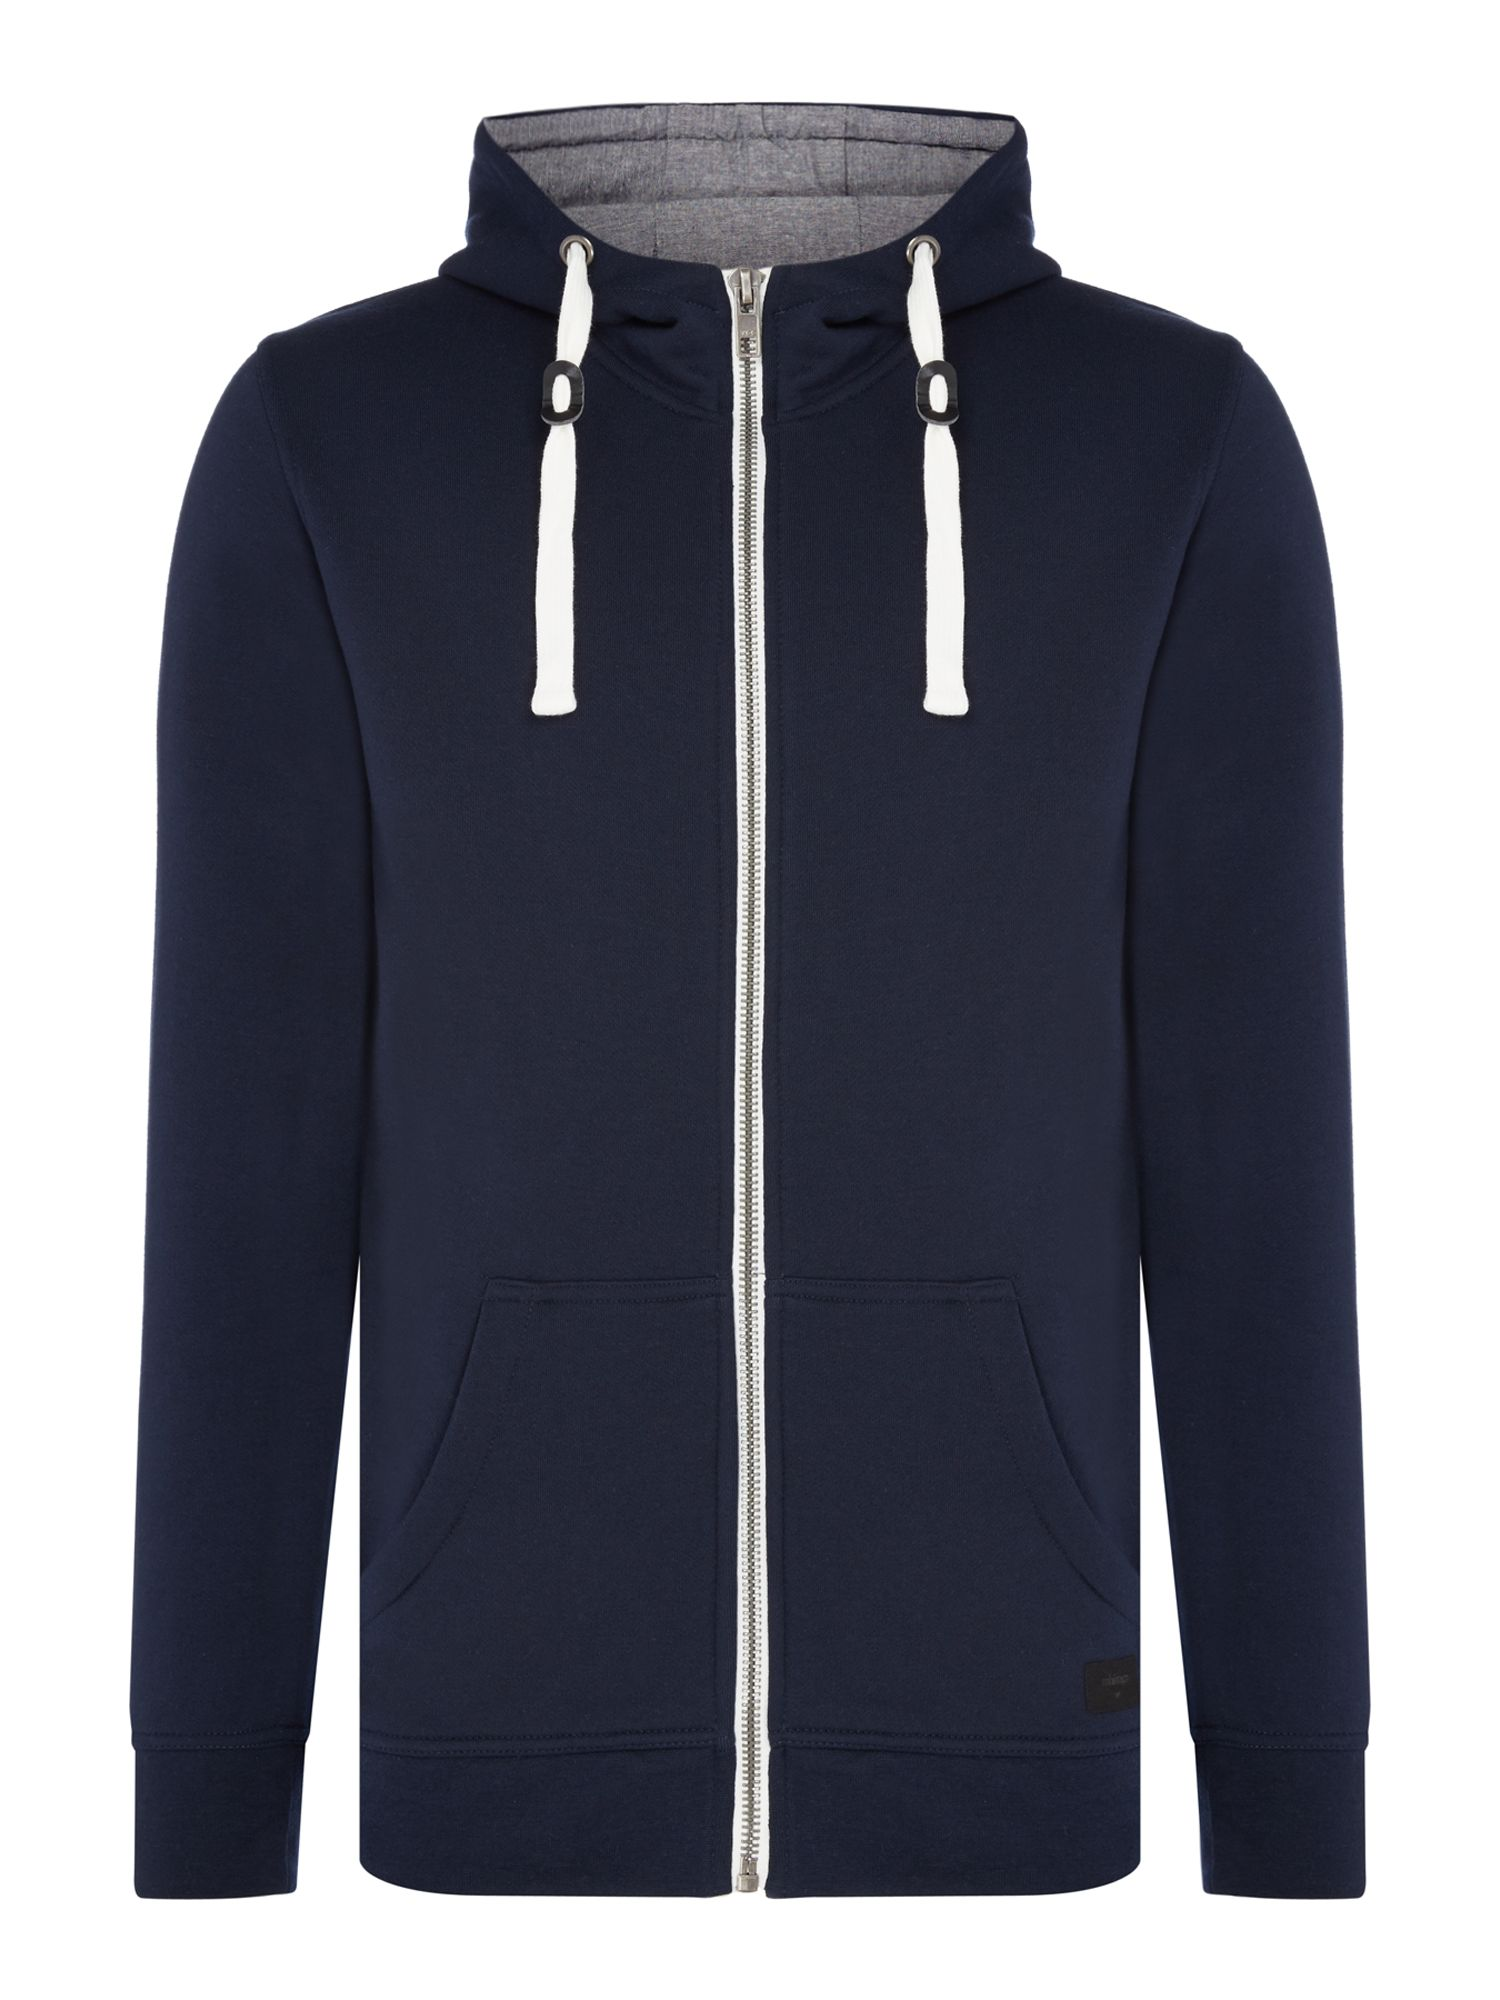 Men's Minimum Hooded Jumper, Blue